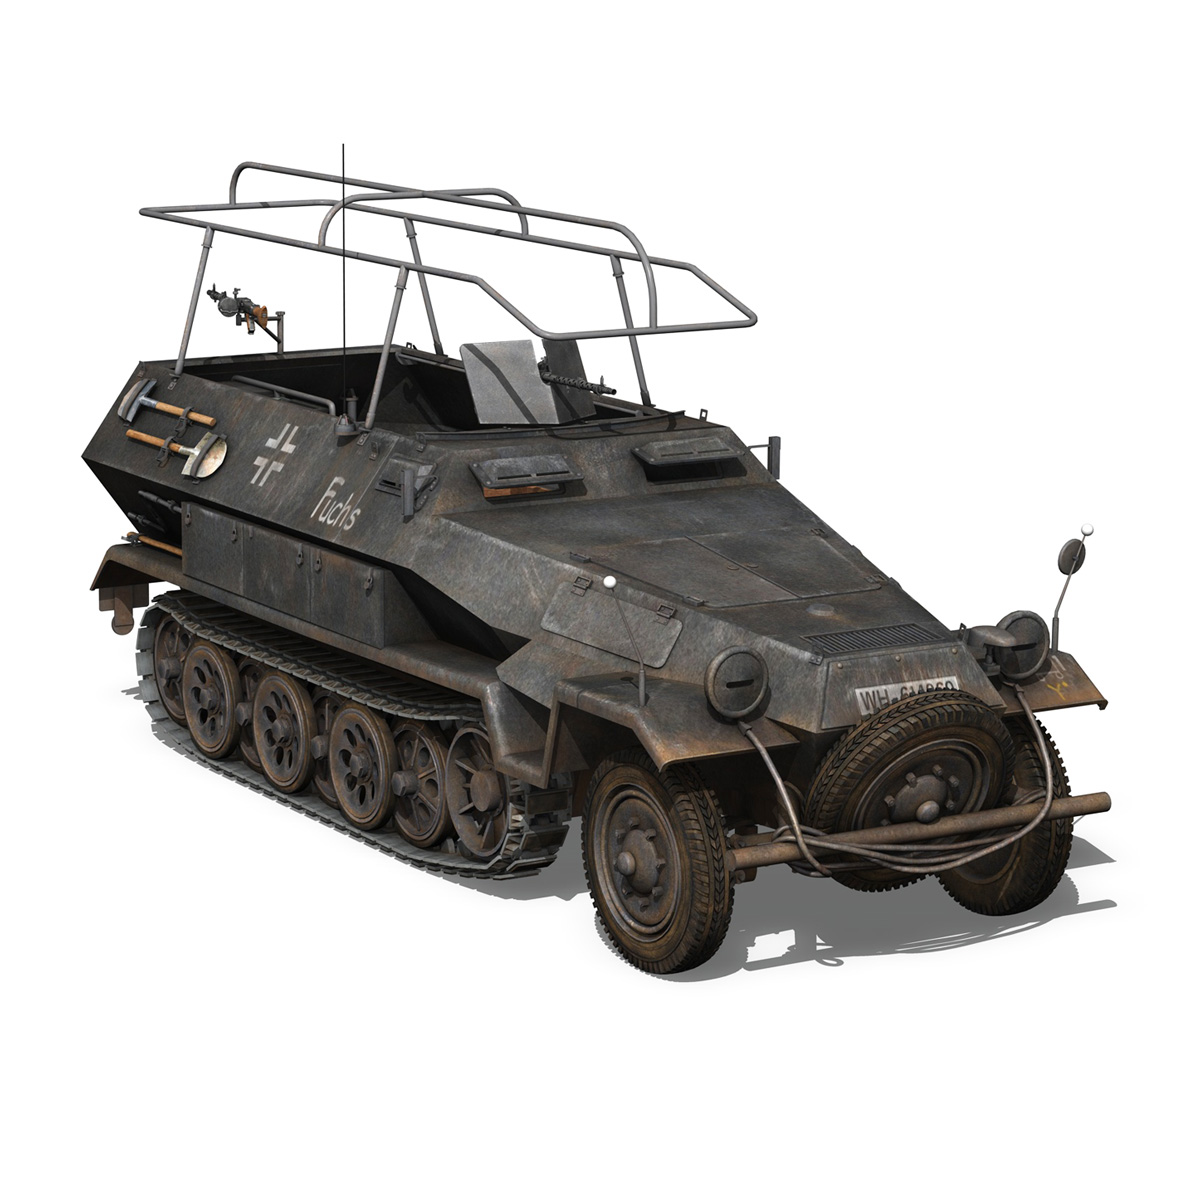 sd.kfz 251 ausf b – communications vehicle – 8pd 3d model 3ds fbx lwo lw lws obj c4d 292032